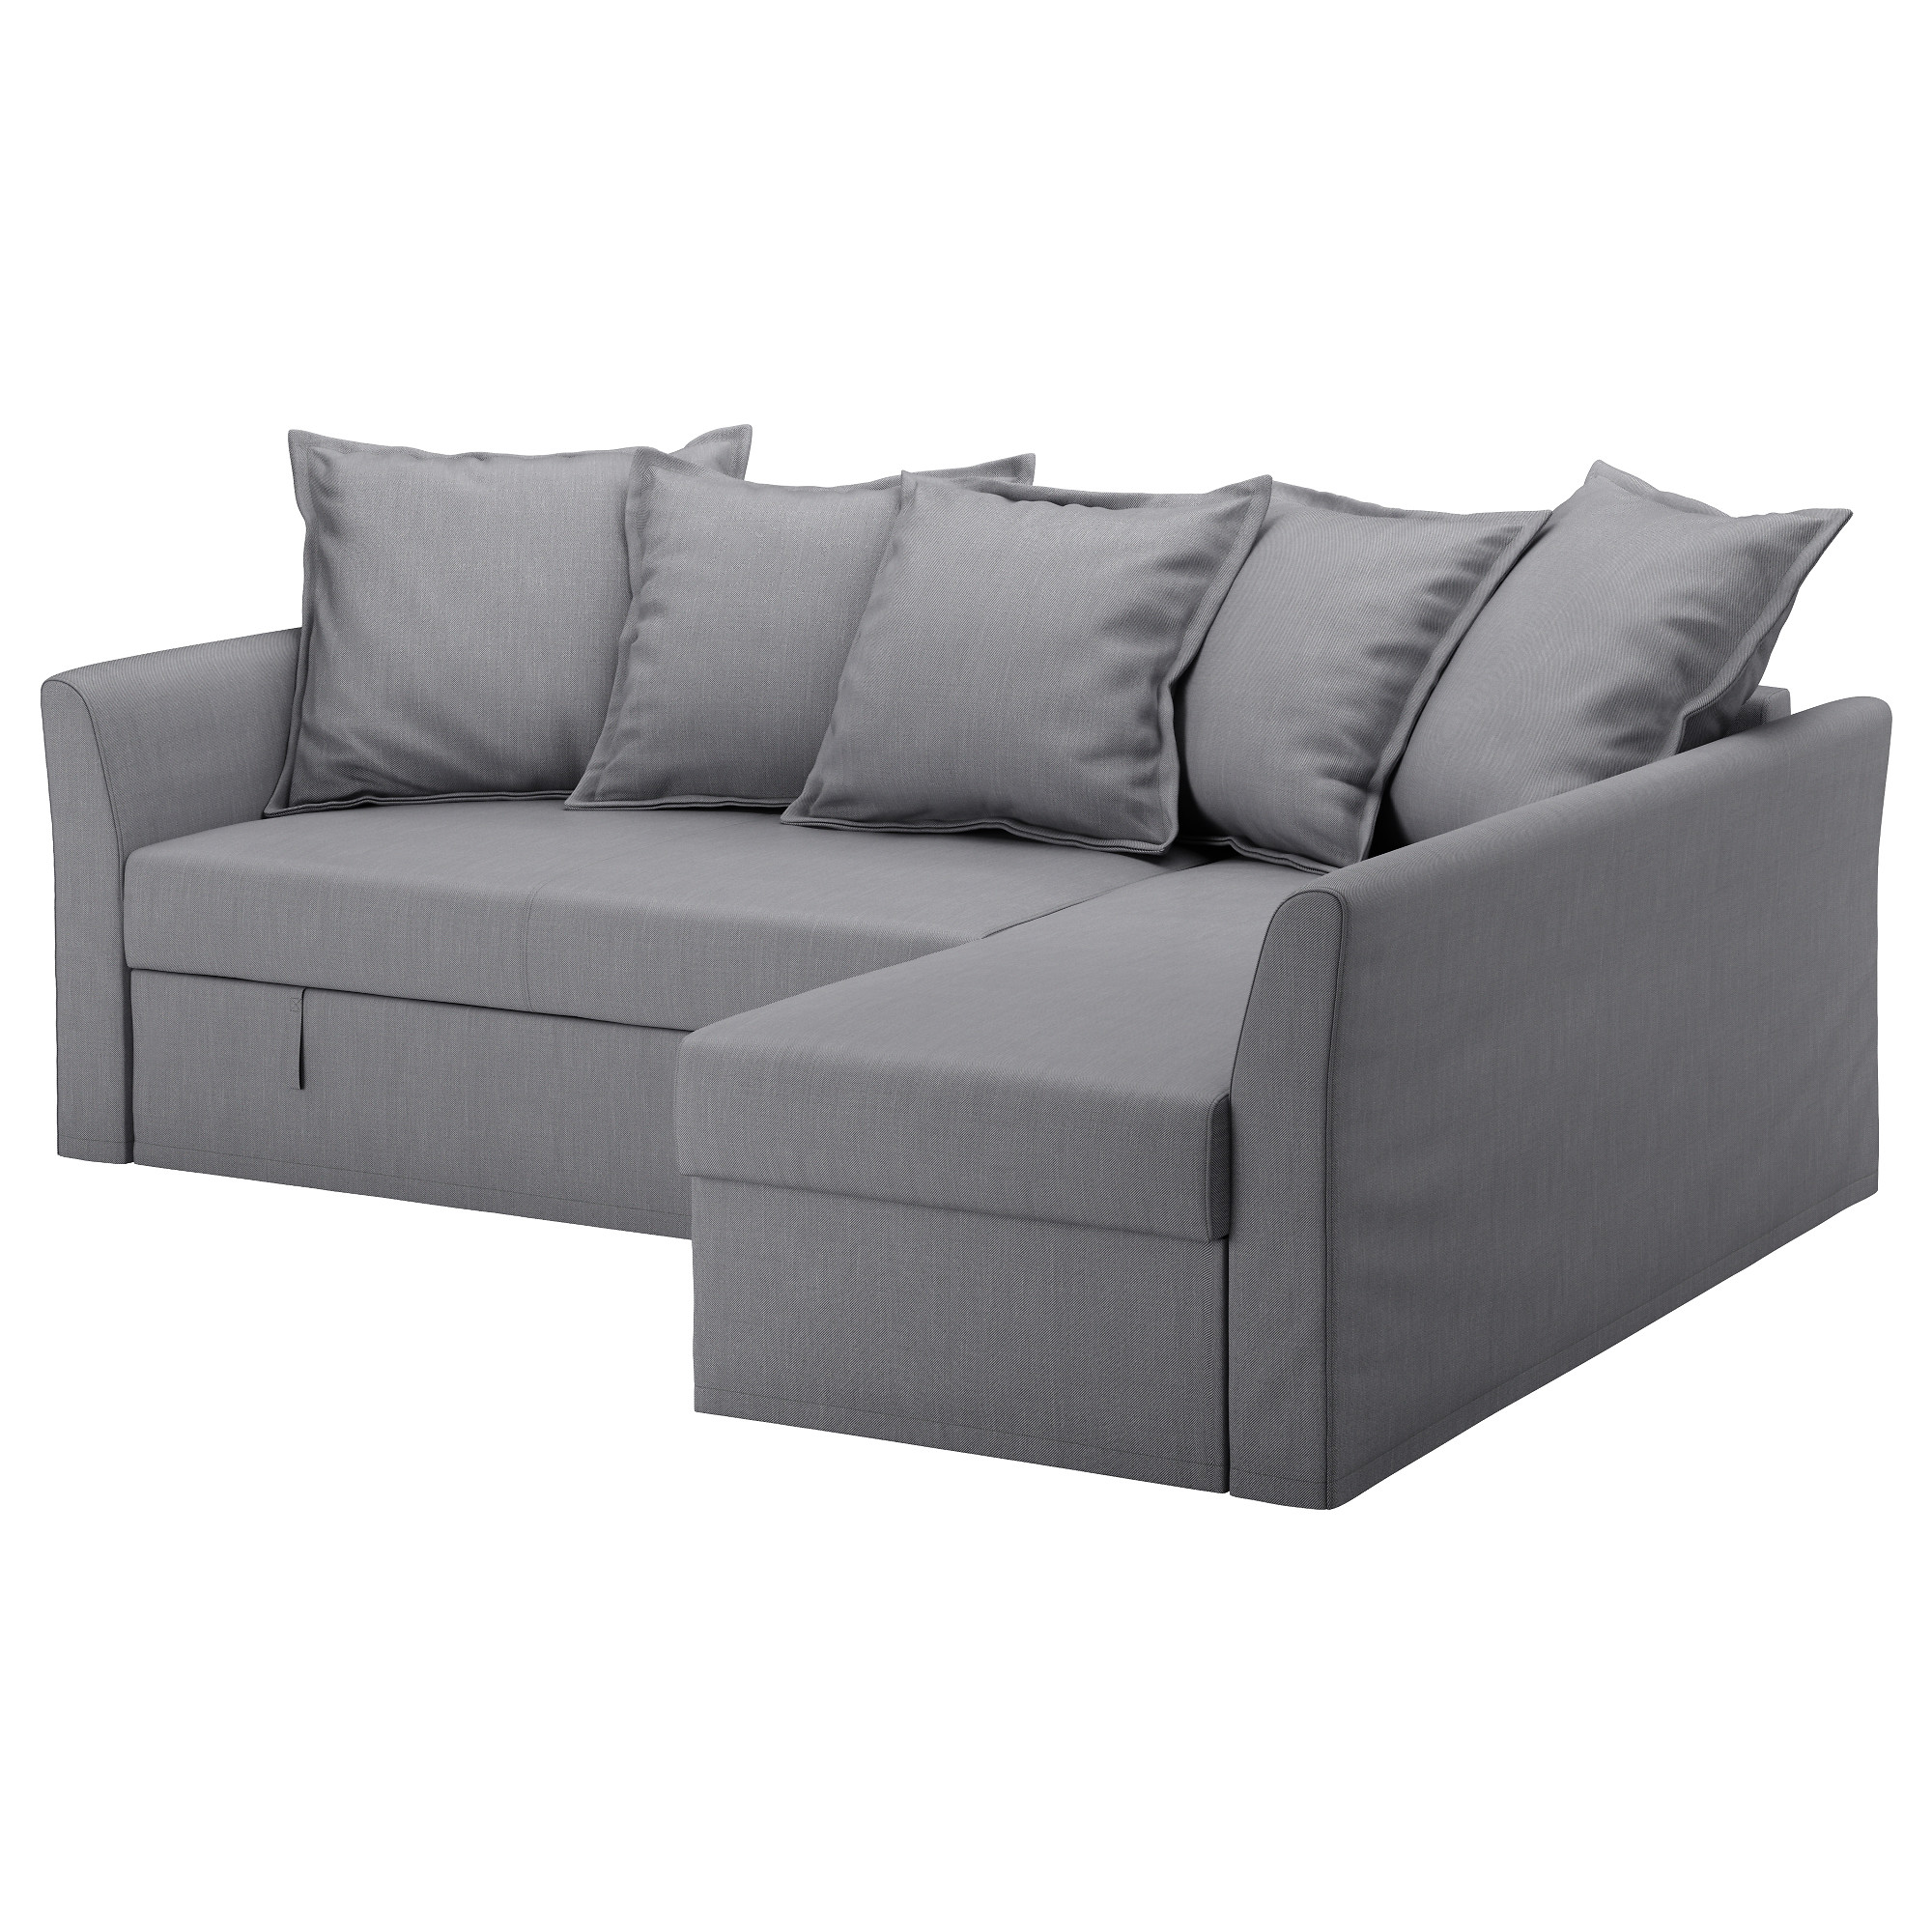 Holmsund corner sofa bed nordvalla medium grey chaise for Daybed cushion ikea